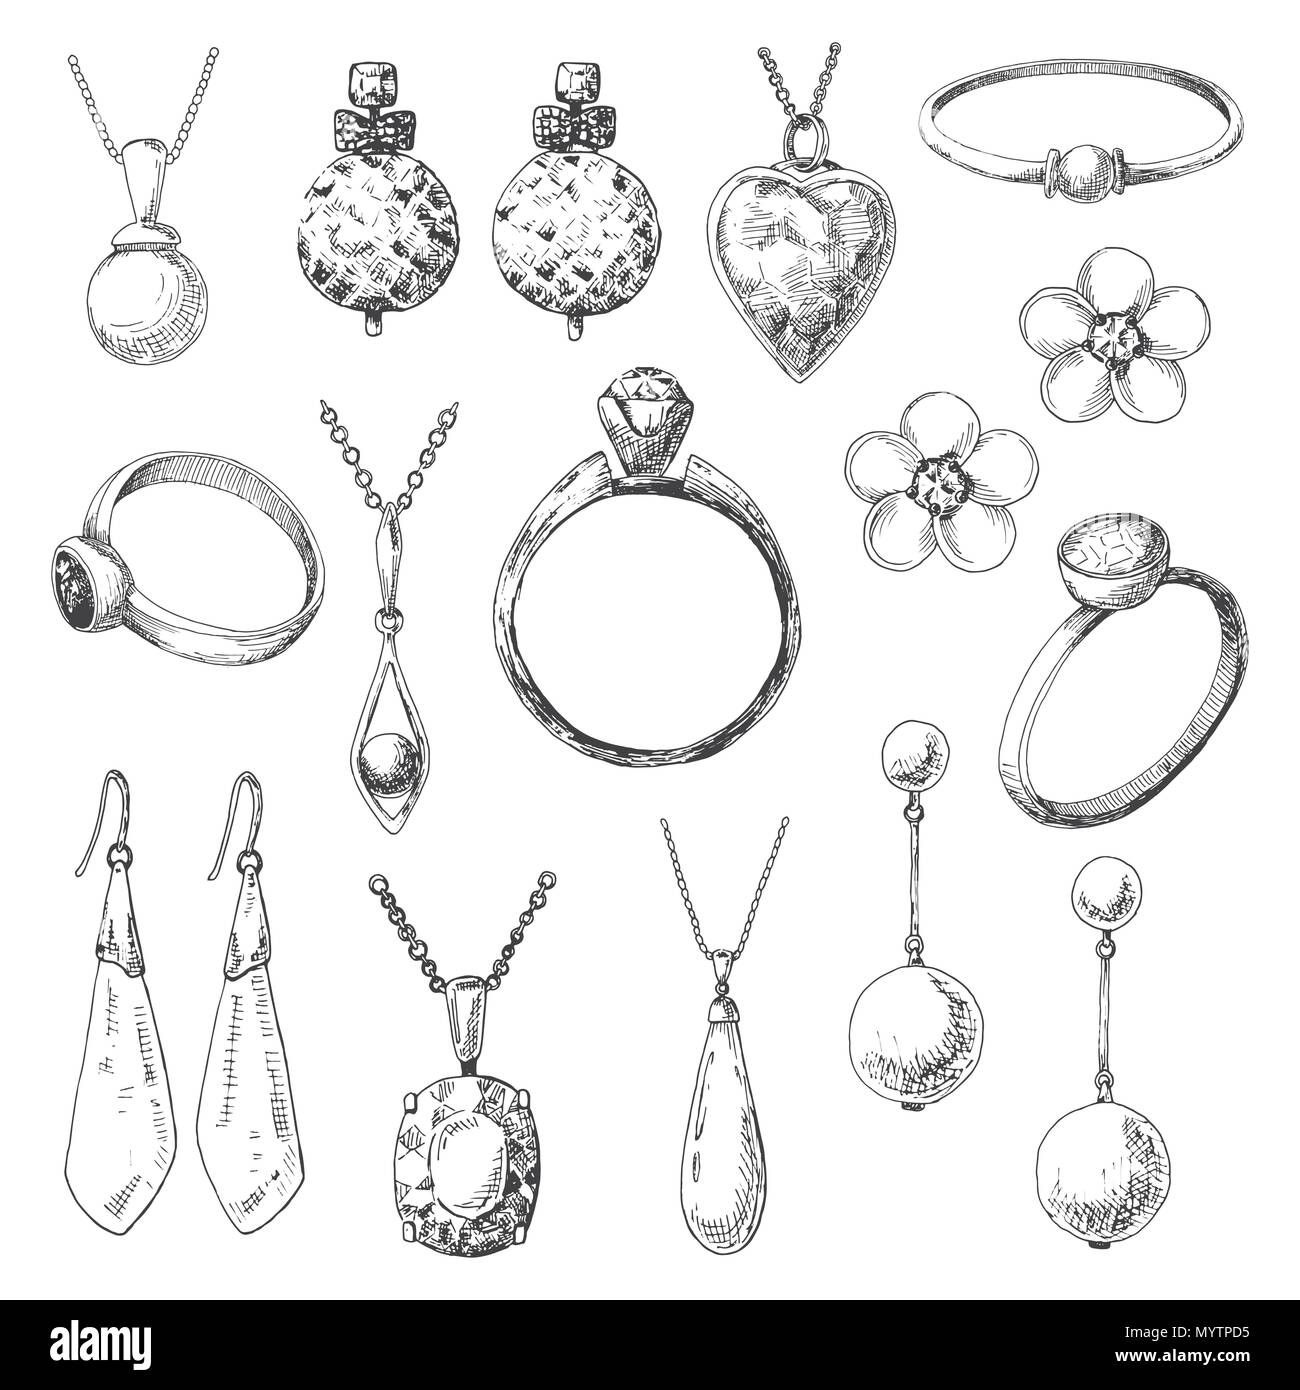 Hand drawn a set of different jewelry. Vector illustration of a sketch style. - Stock Image